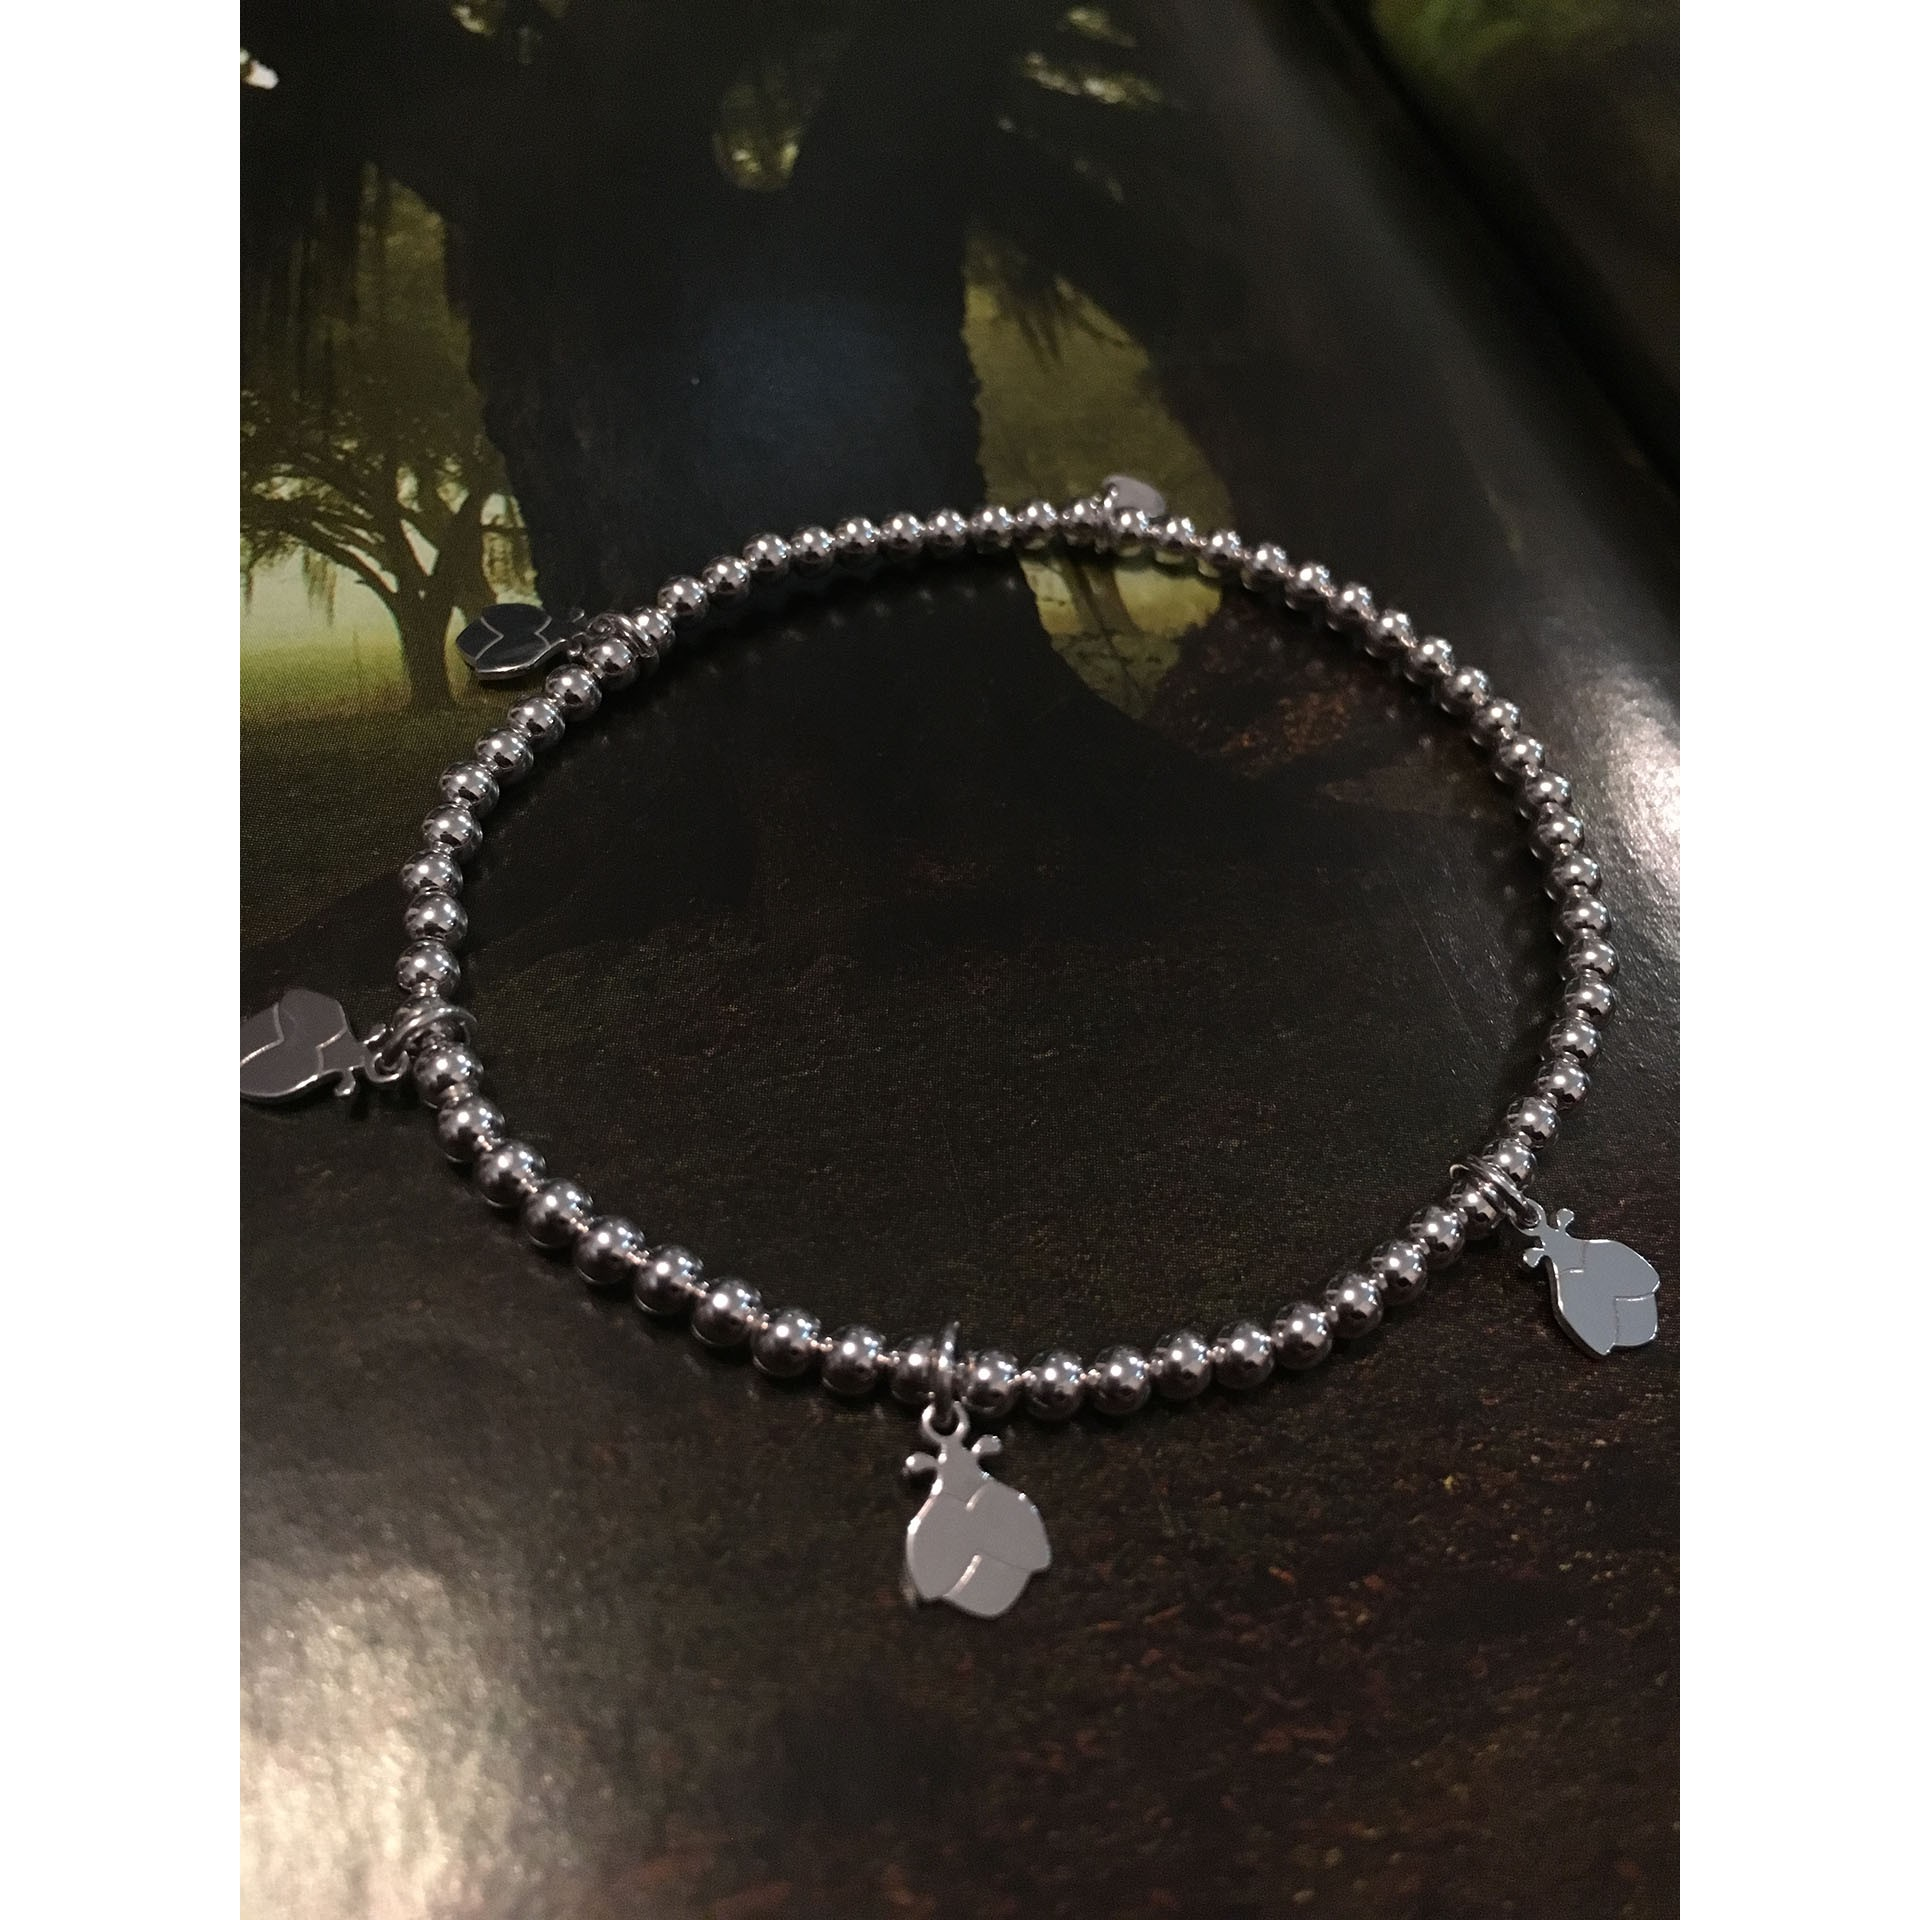 The Ladybugs in White silver bracelet